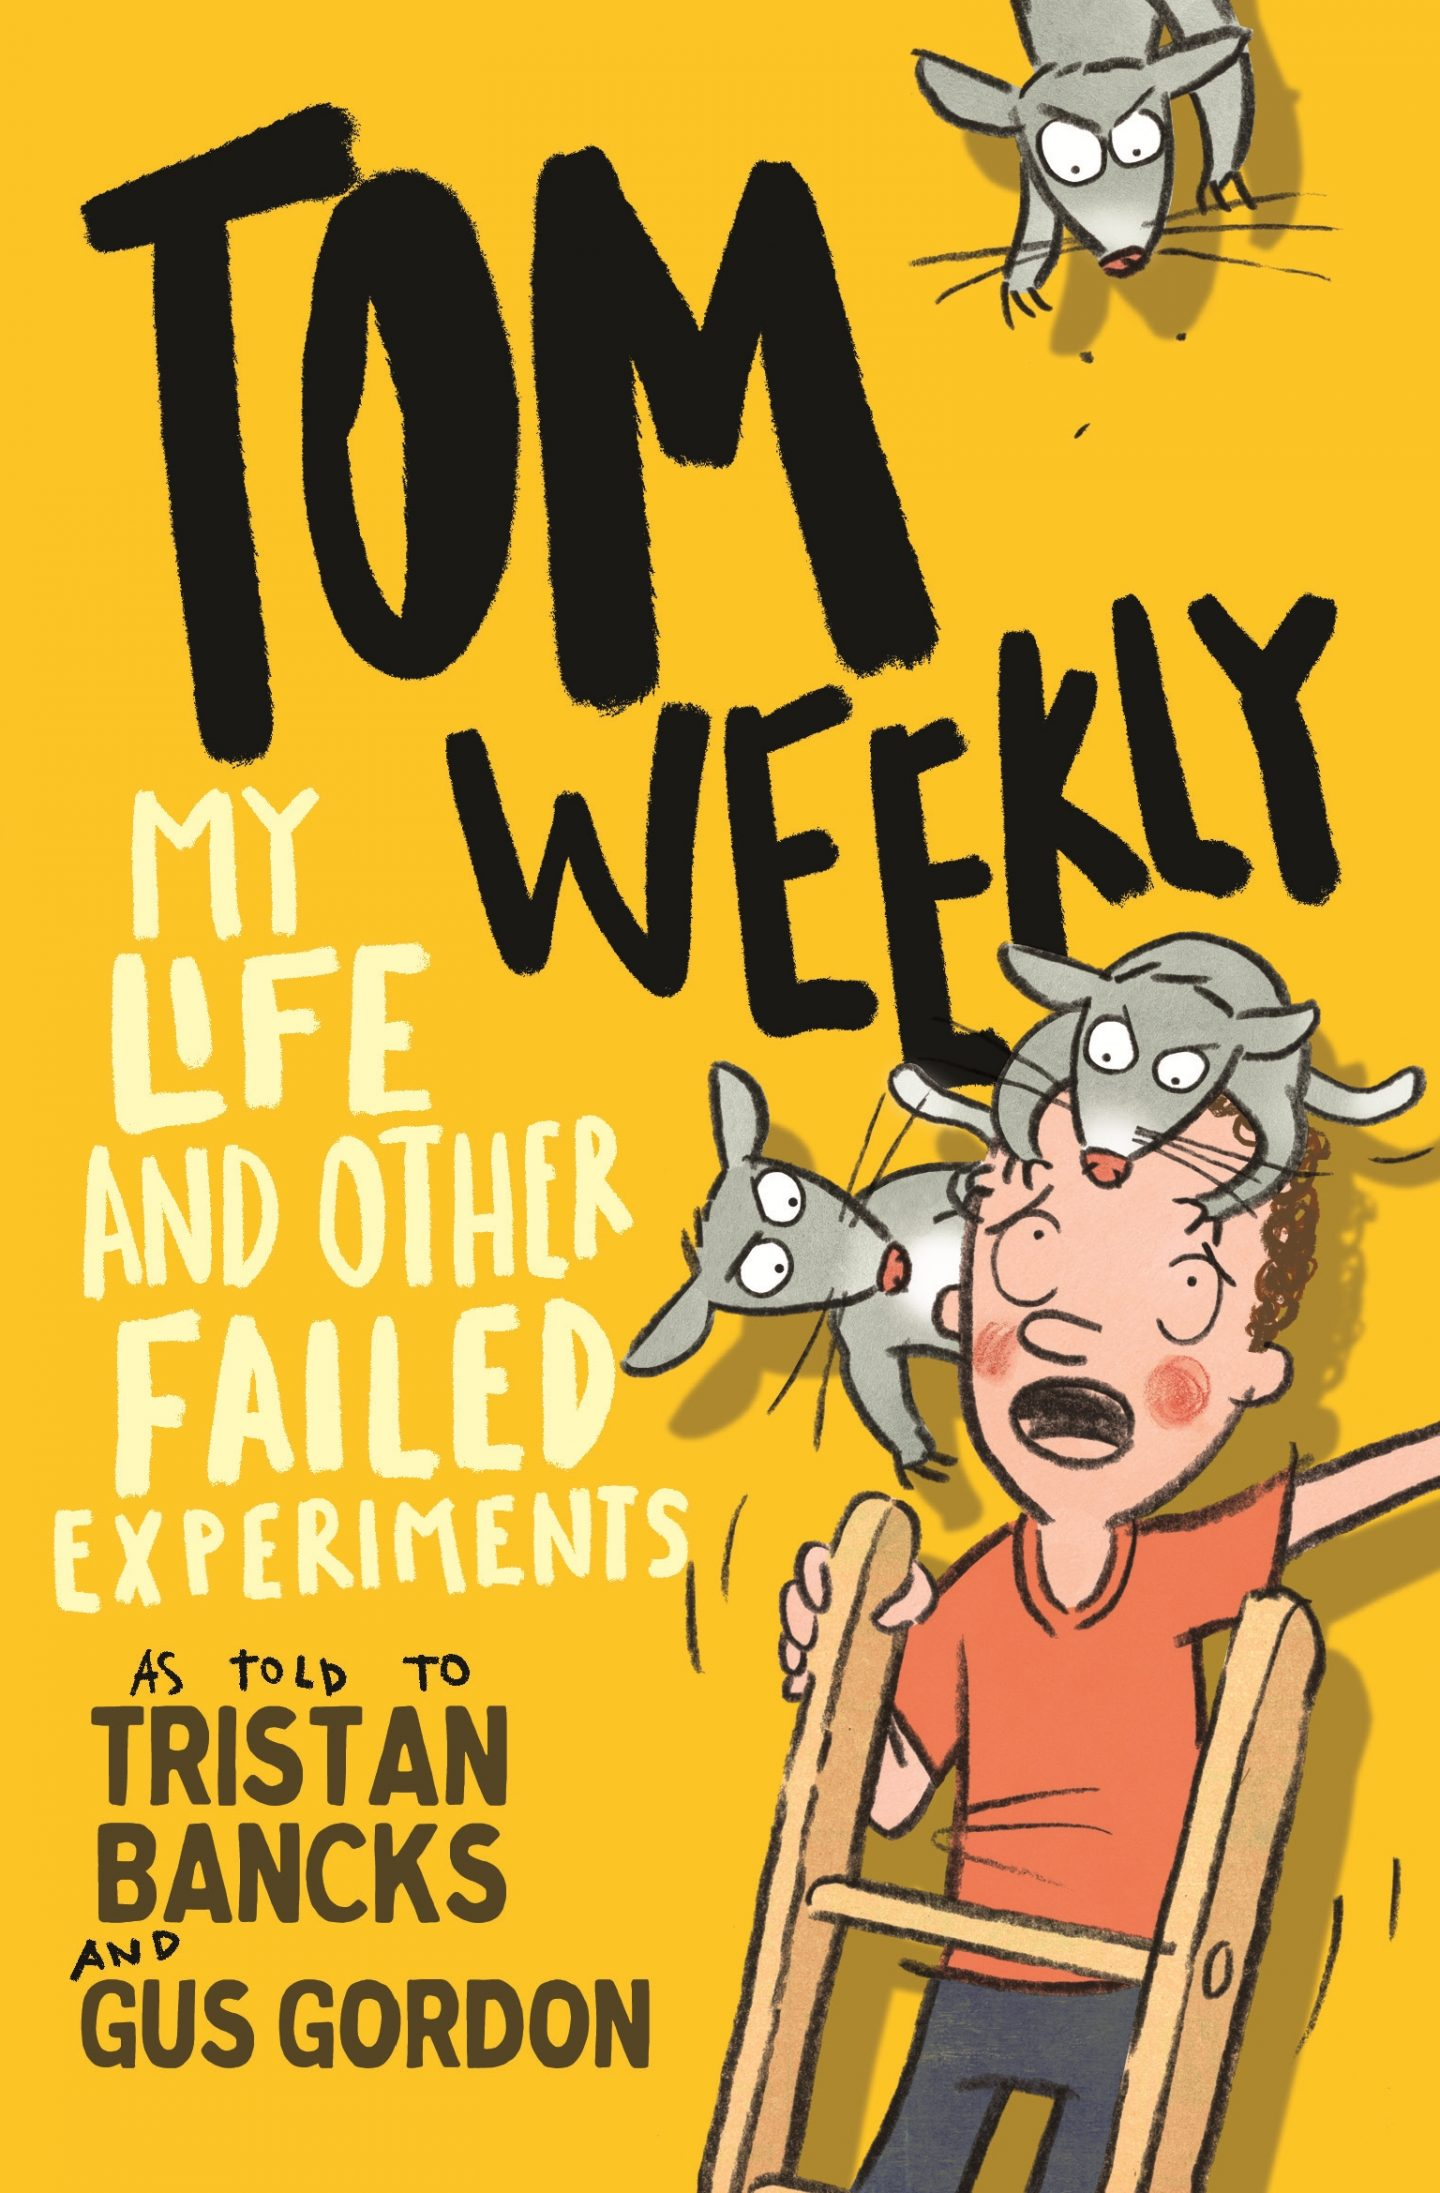 Tom Weekly My Life & Other Failed Experiments